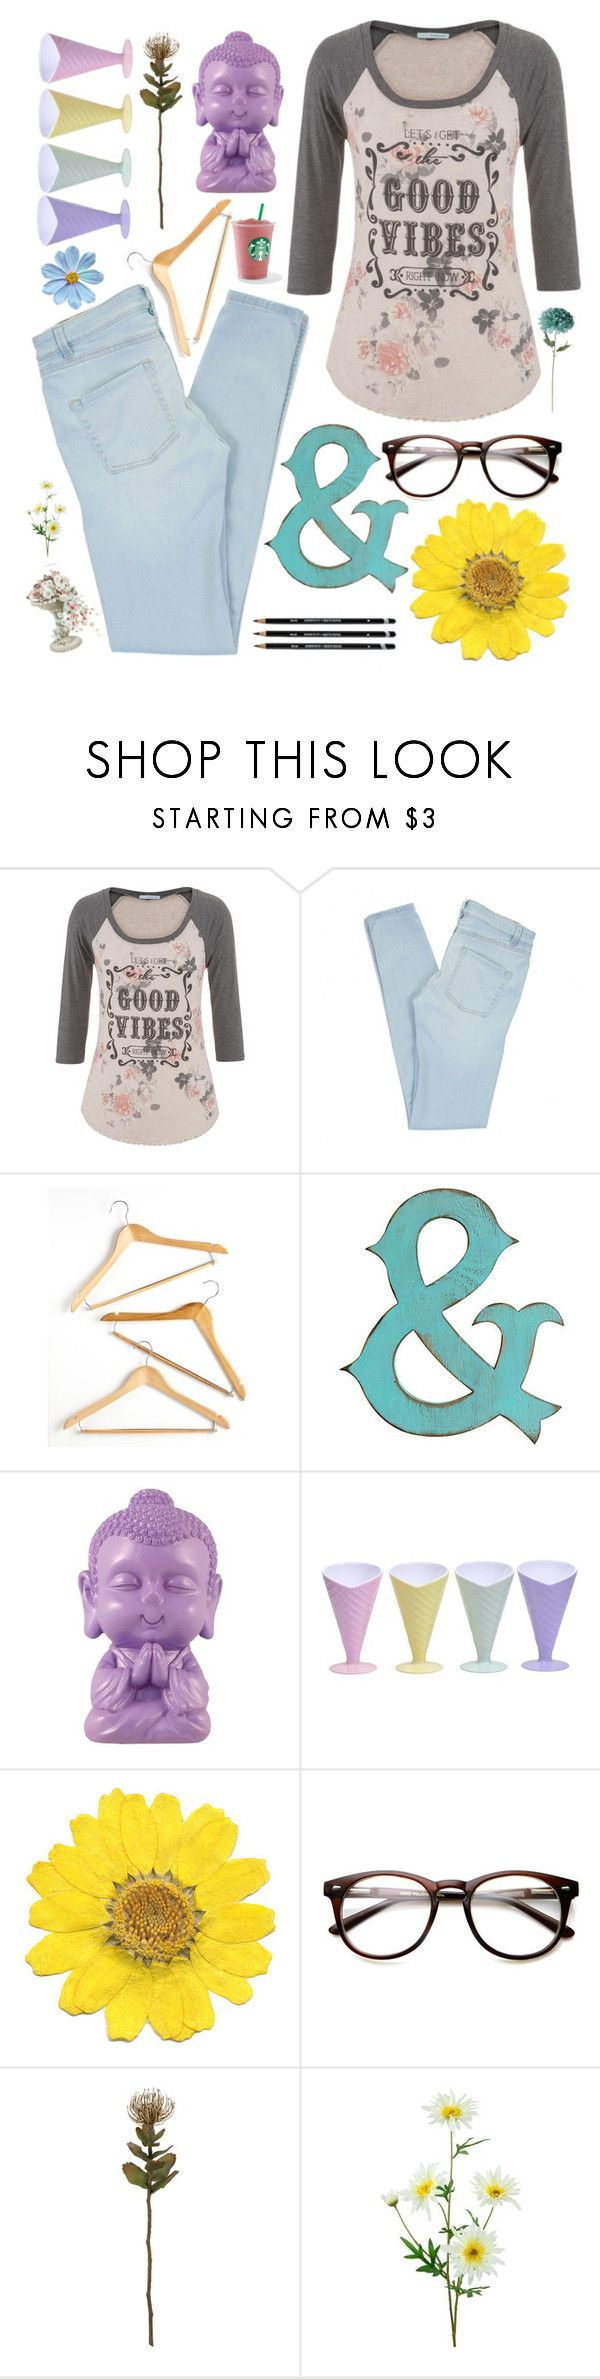 """But..."" by larissa-k ❤ liked on Polyvore featuring maurices, Marc by Marc Jacobs, Honey-Can-Do, Slippin' Southern, Été Swim and Crate and Barrel"